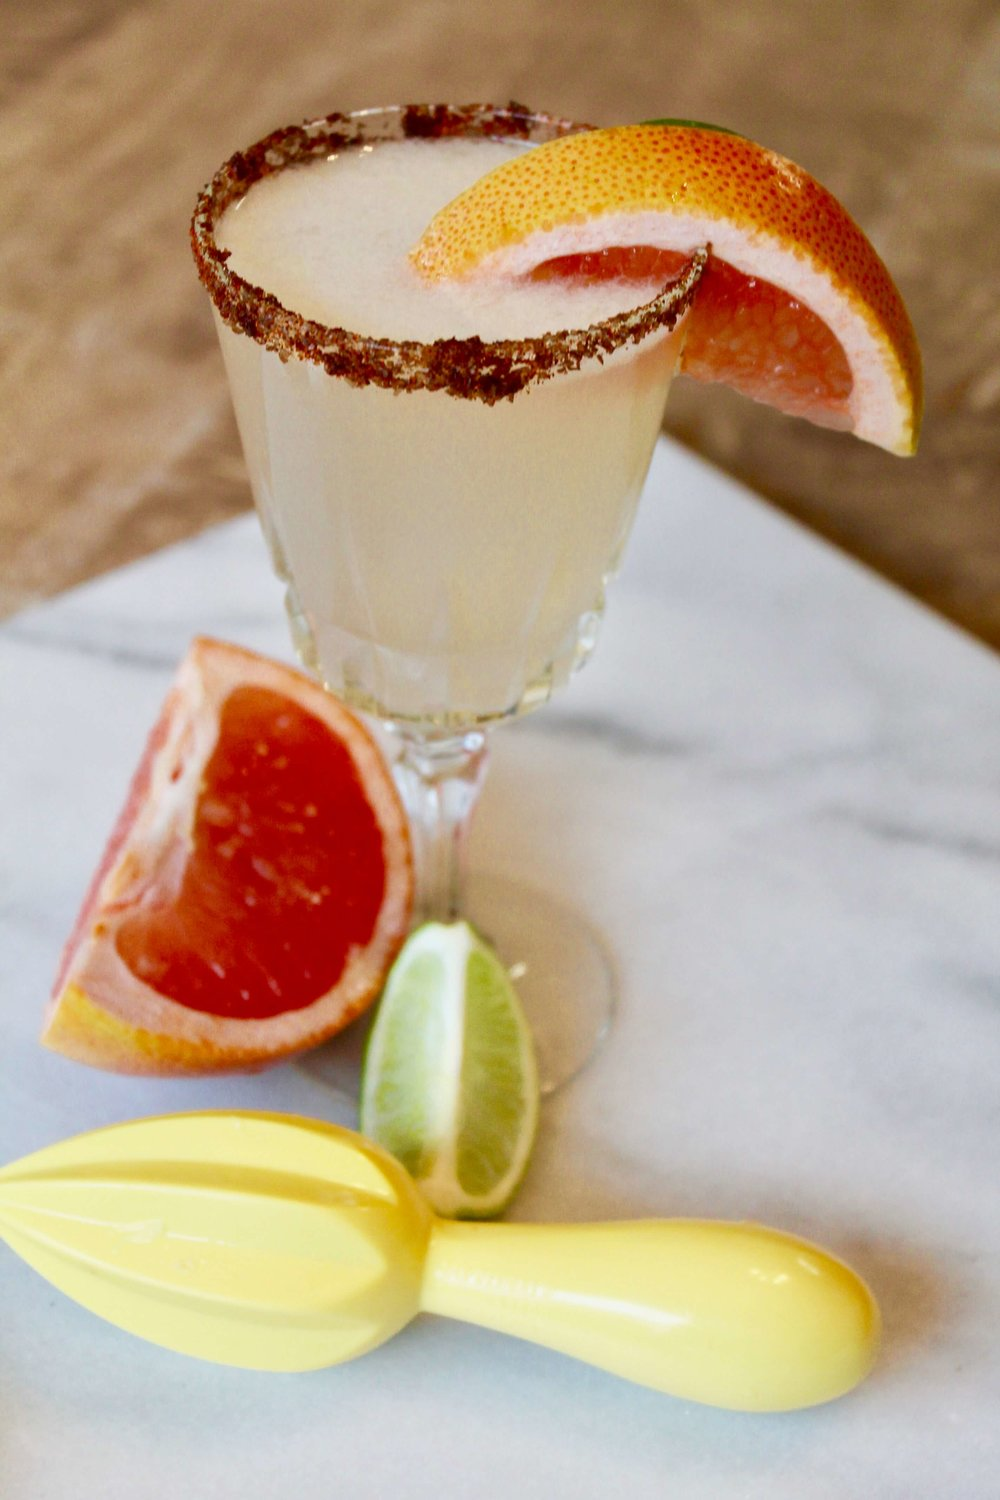 Oh! My Maria Margarita Recipe - Serves 1Ingredients:1 Lime, freshly squeezed1/2 Grapefruit, freshly squeezed1 1/2 Tbsp. Simple Syrup2 shots (or 3 oz.) Tequila1 Tbsp. Smoked Salt1 Tbsp. Chipotle SeasoningInstructions:Fill a cocktail shaker with ice. Add lime juice, grapefruit juice, Simple Syrup and tequila. Cover and shake until mixed and chilled, about 30 seconds. Place Smoked salt and chipotle seasoning on a plate. Use the lime to rim the margarita glass. Press the rim into the smoked salt and chipotle mixture. Strain the margarita into the glass. Garnish with a wedge of lime and grapefruit.